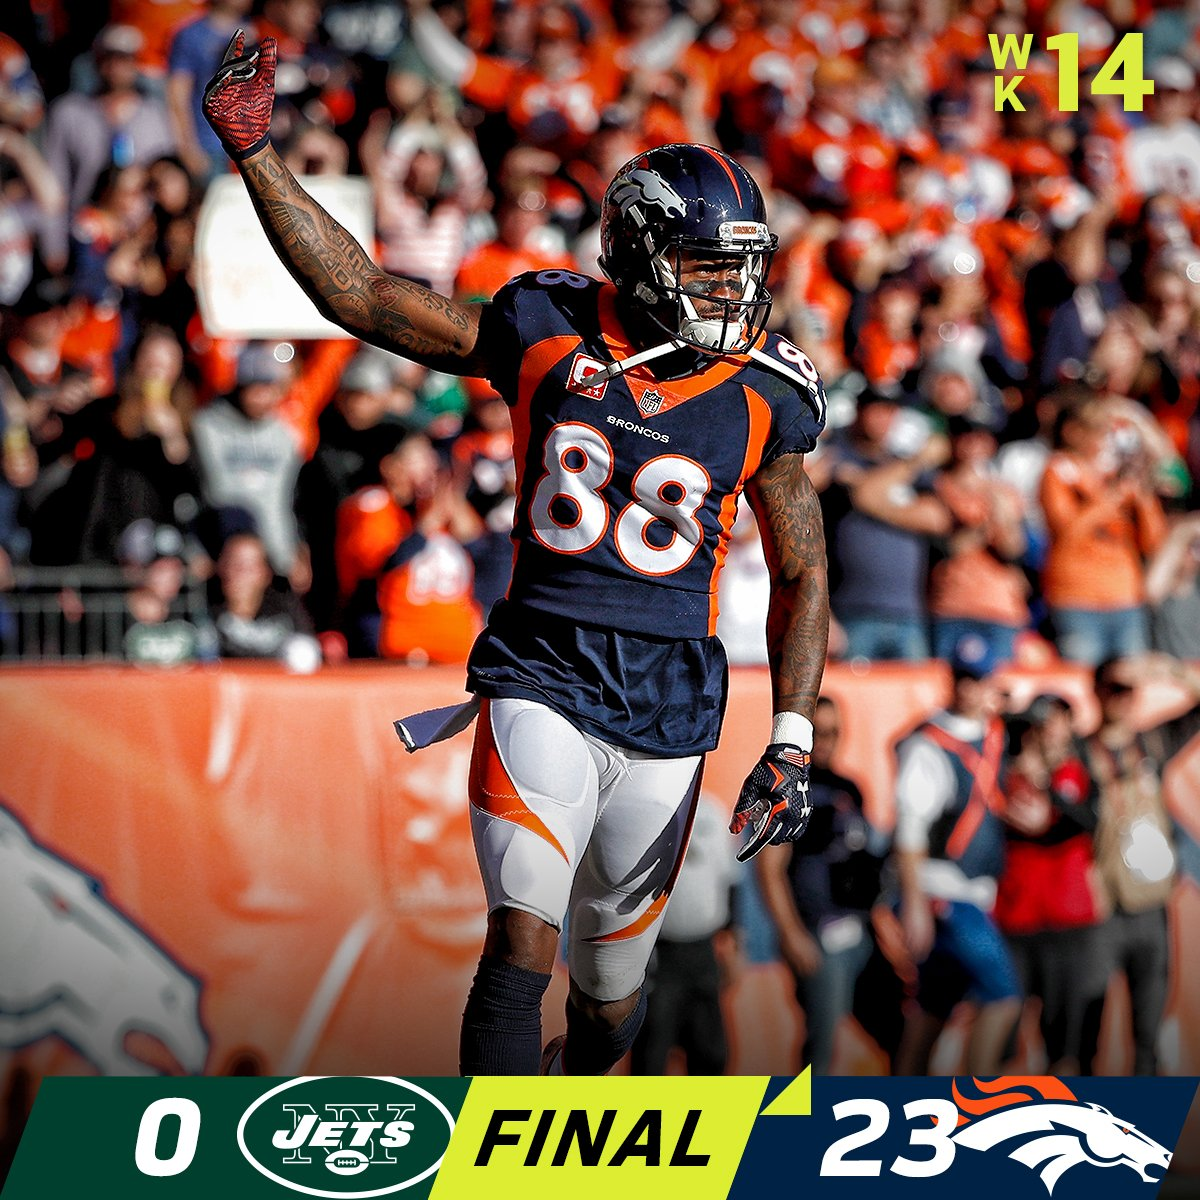 FINAL: The @Broncos get the shutout! #NYJvsDEN  #BroncosCountry https://t.co/SkHTMRnDlj